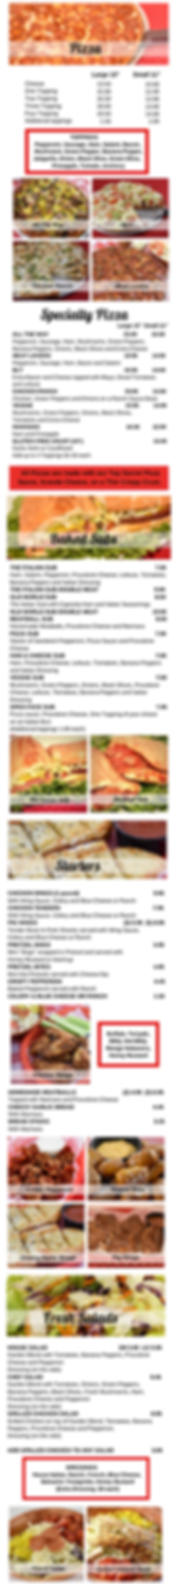 MENU FOR PDF and website.png